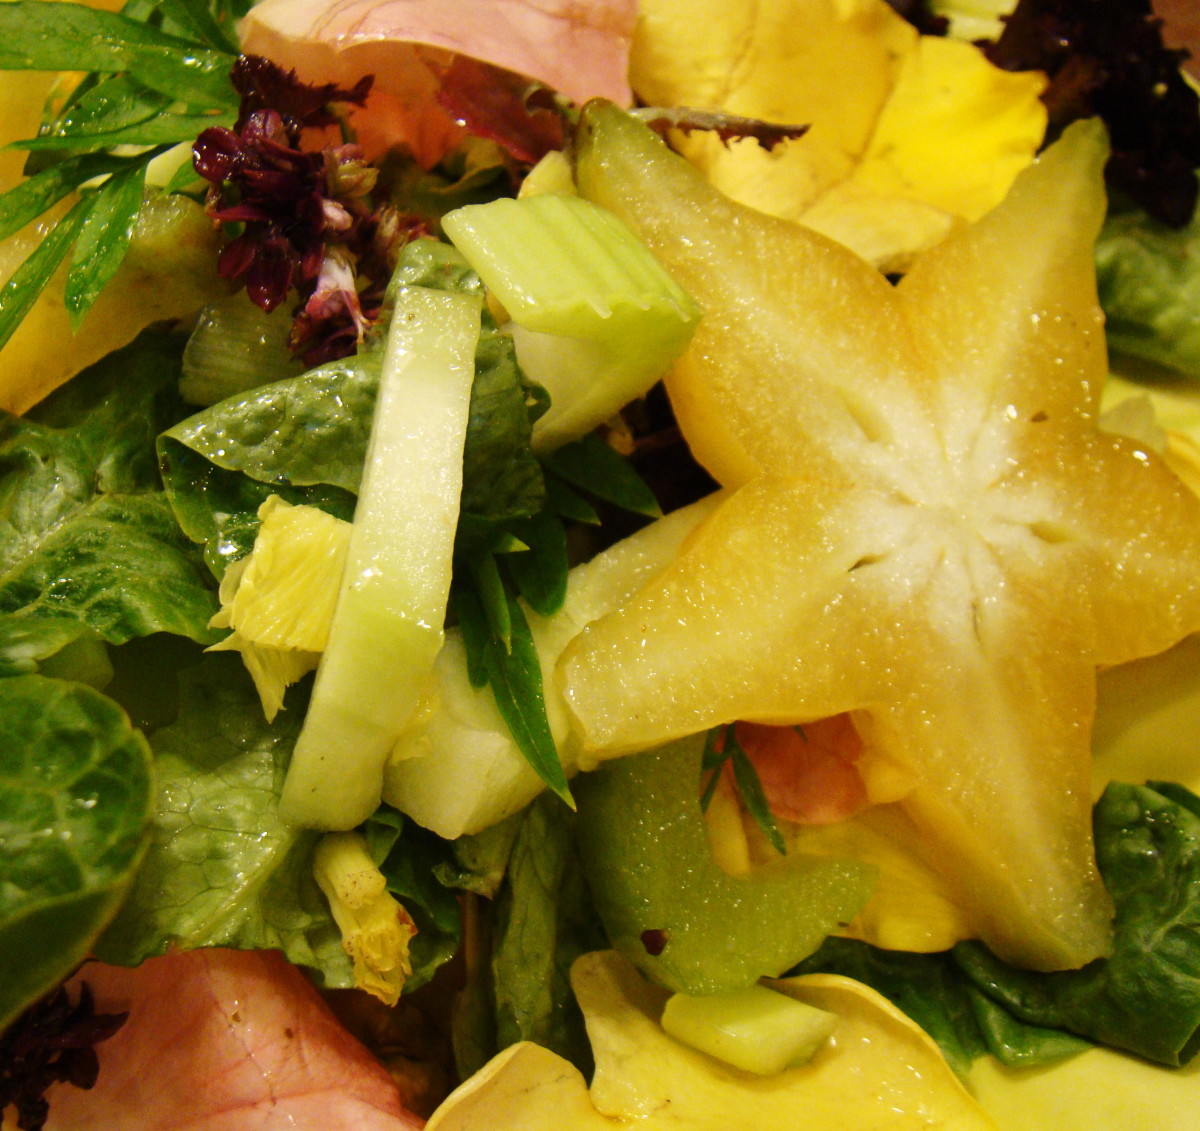 A slice of starfruit served in a salad.